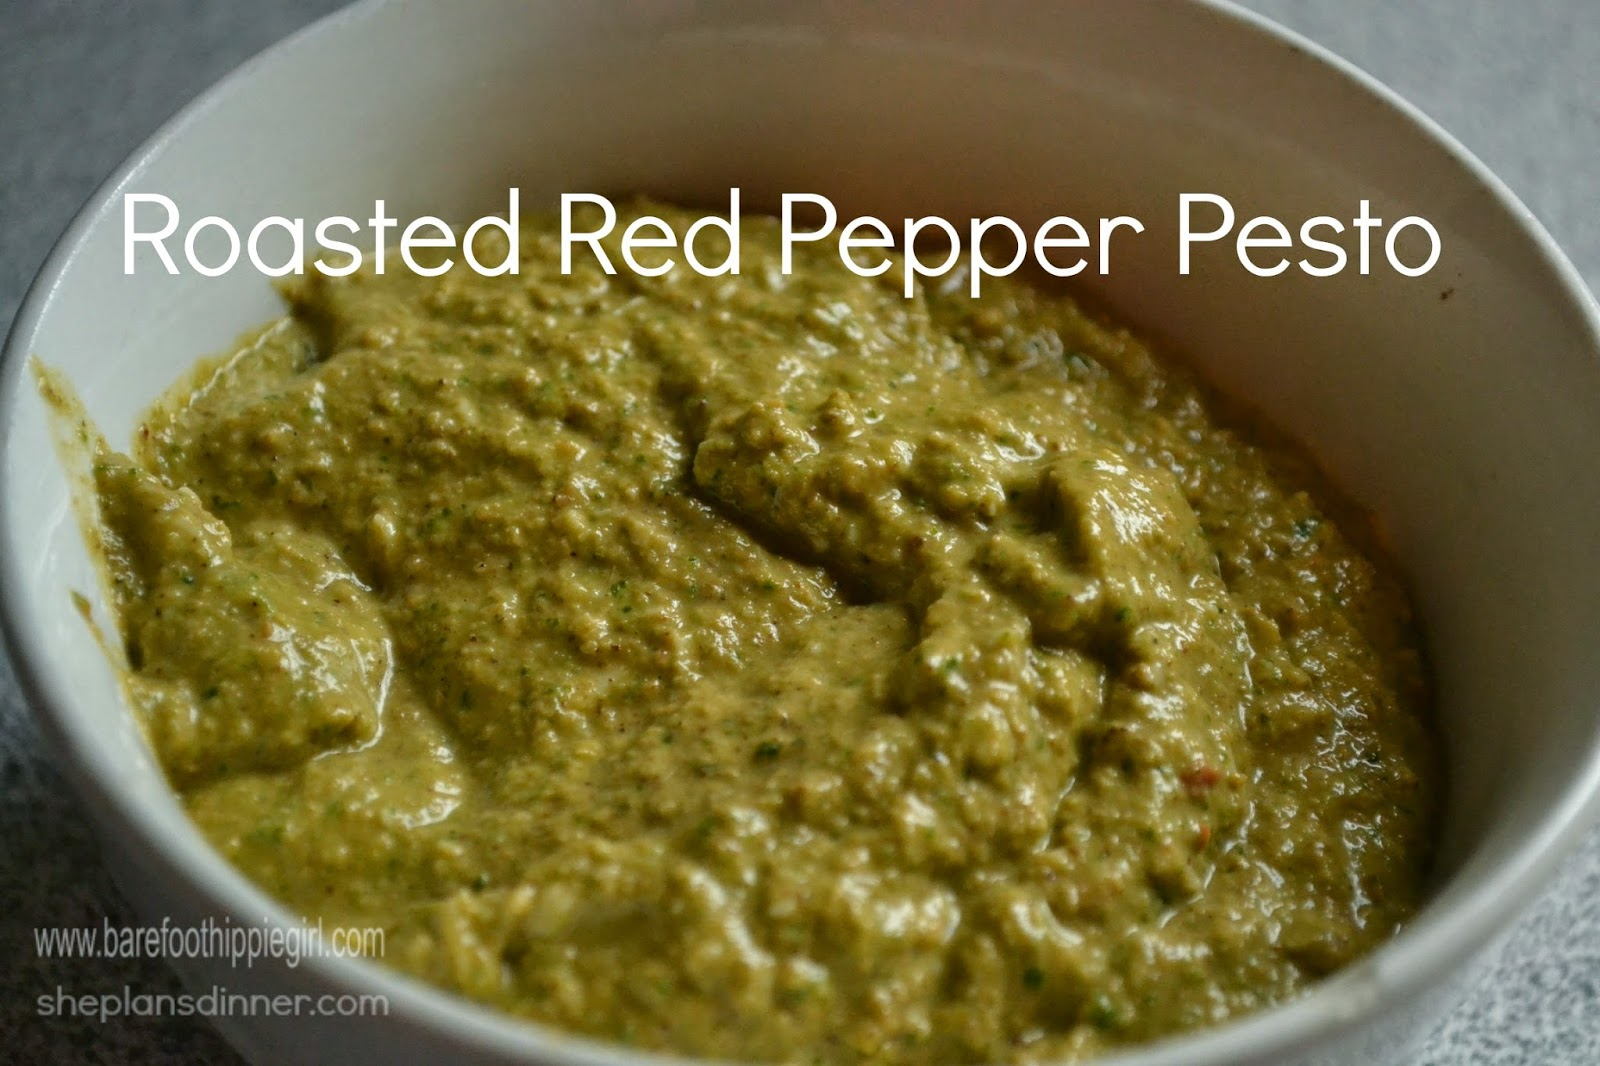 Roasted Red Pepper Pesto is amazing!